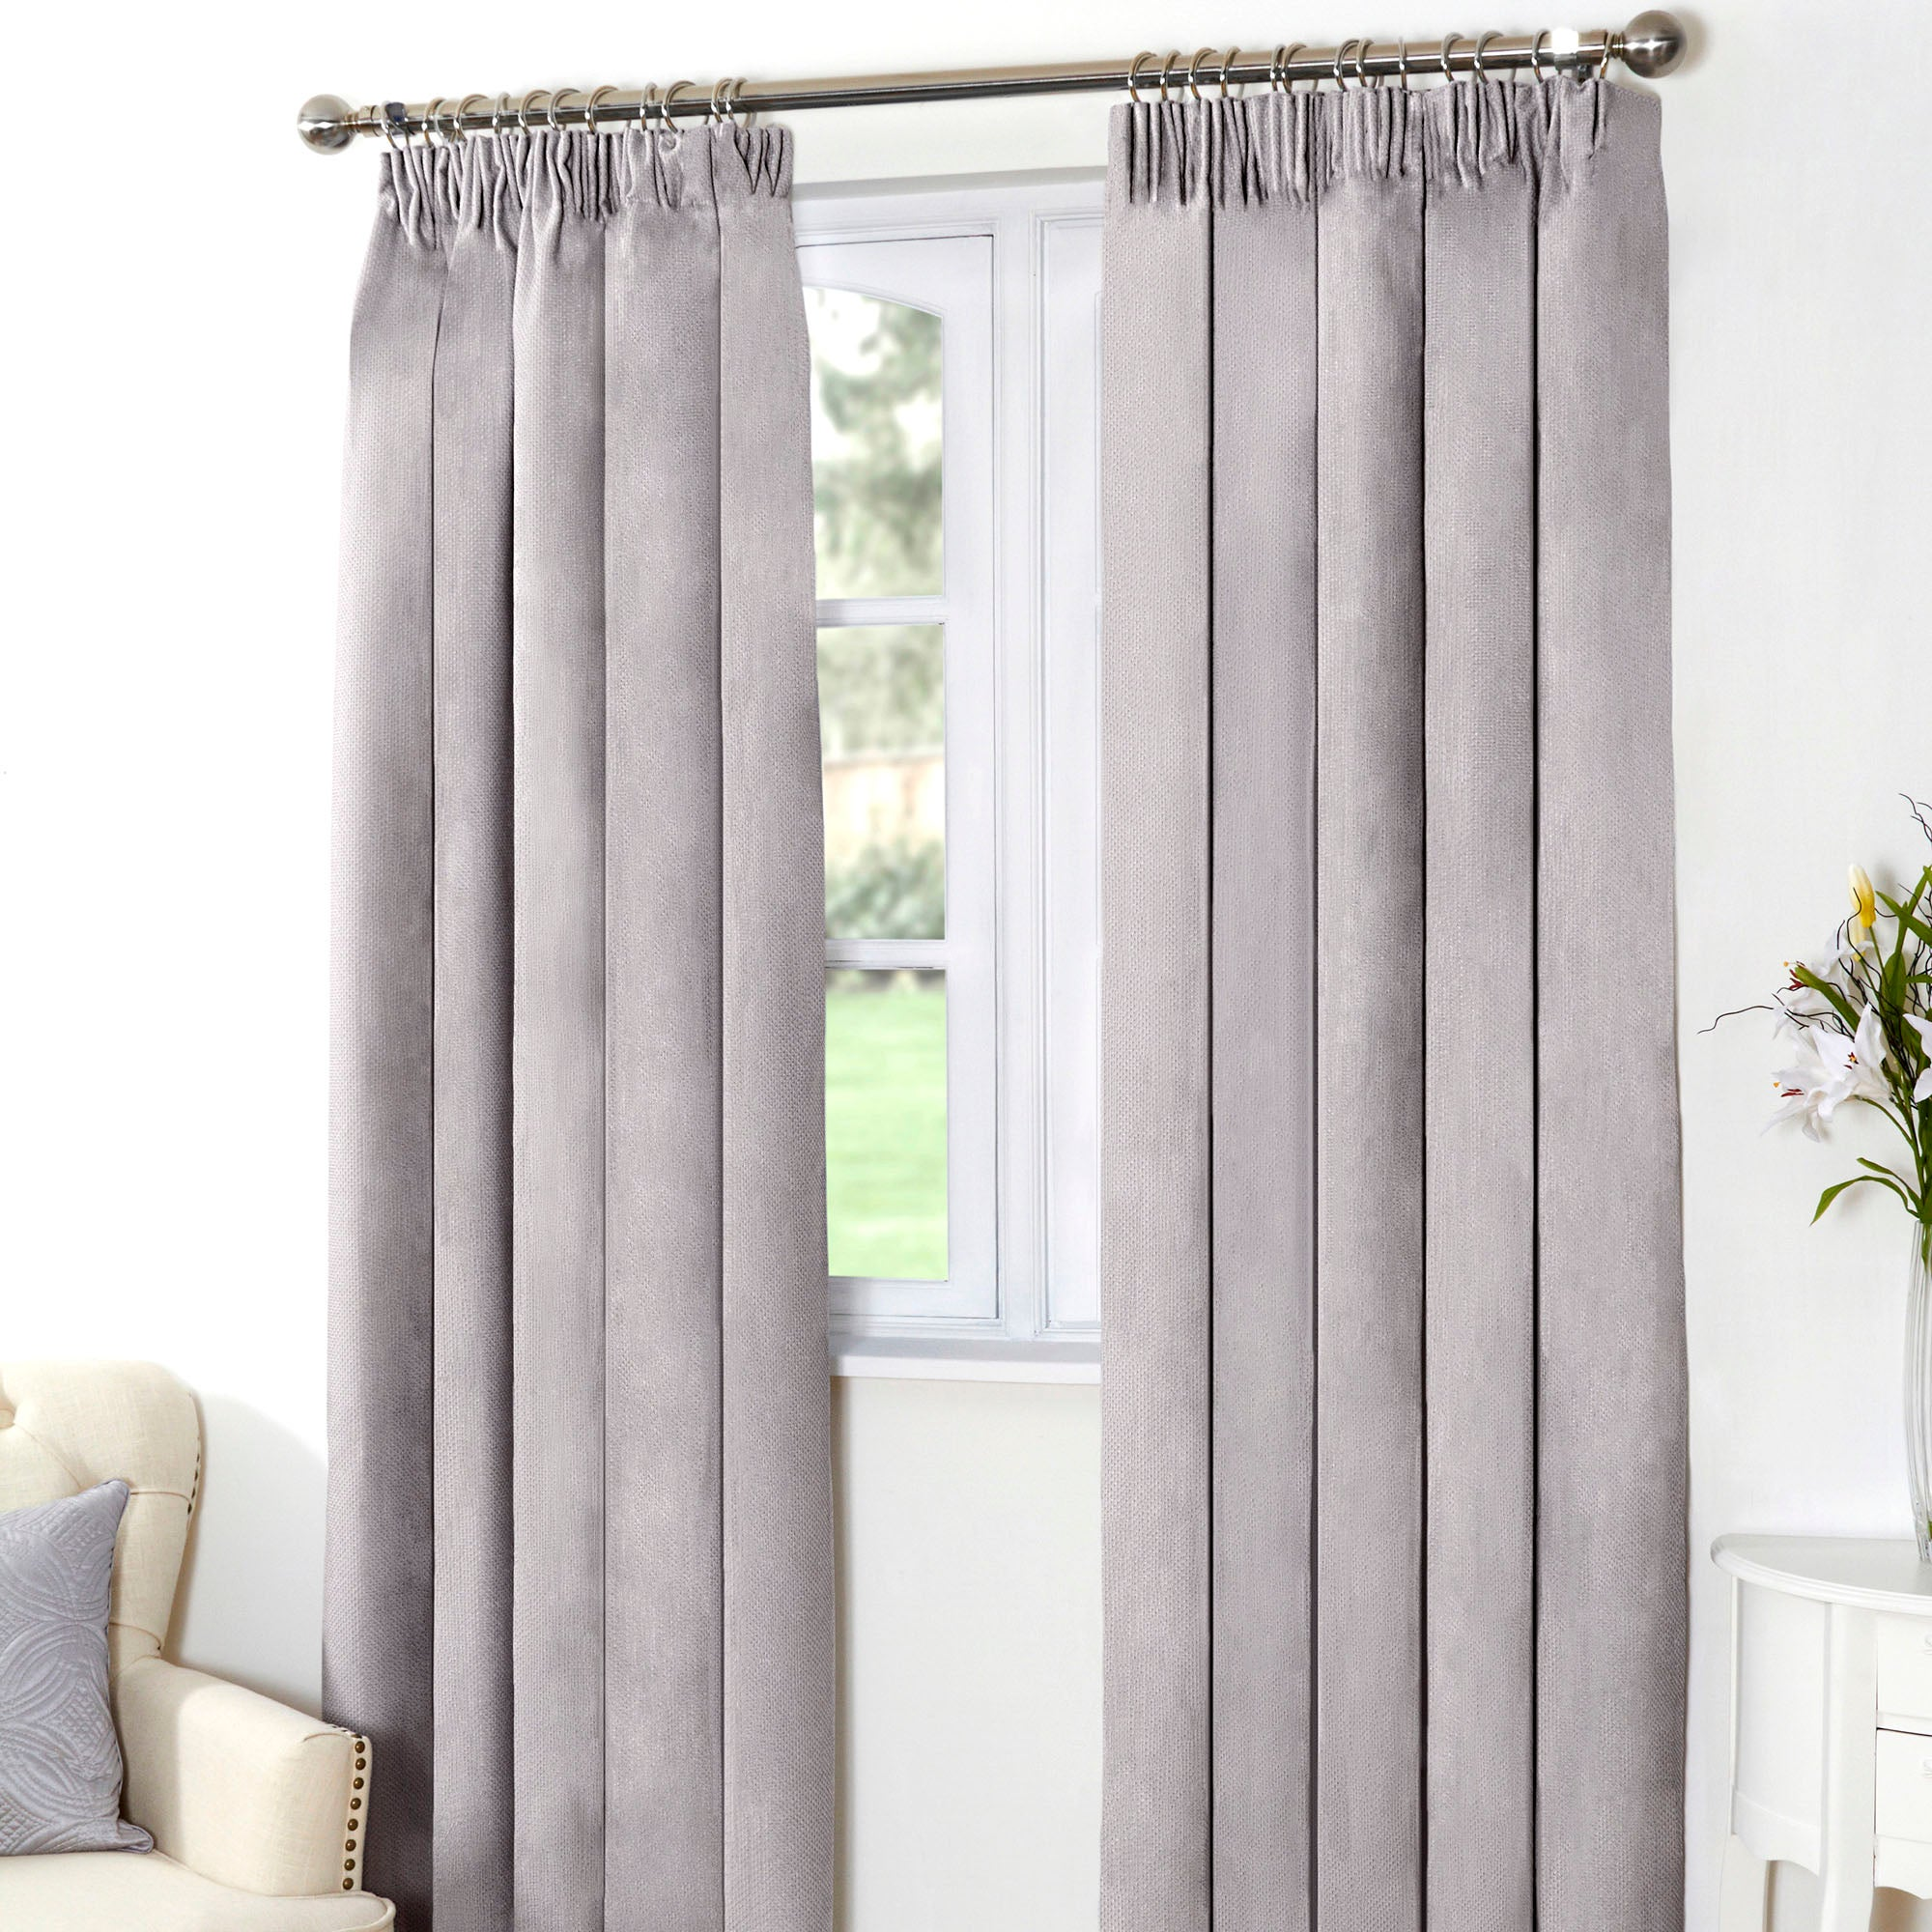 Grey Aspen Thermal Pencil Pleat Curtains